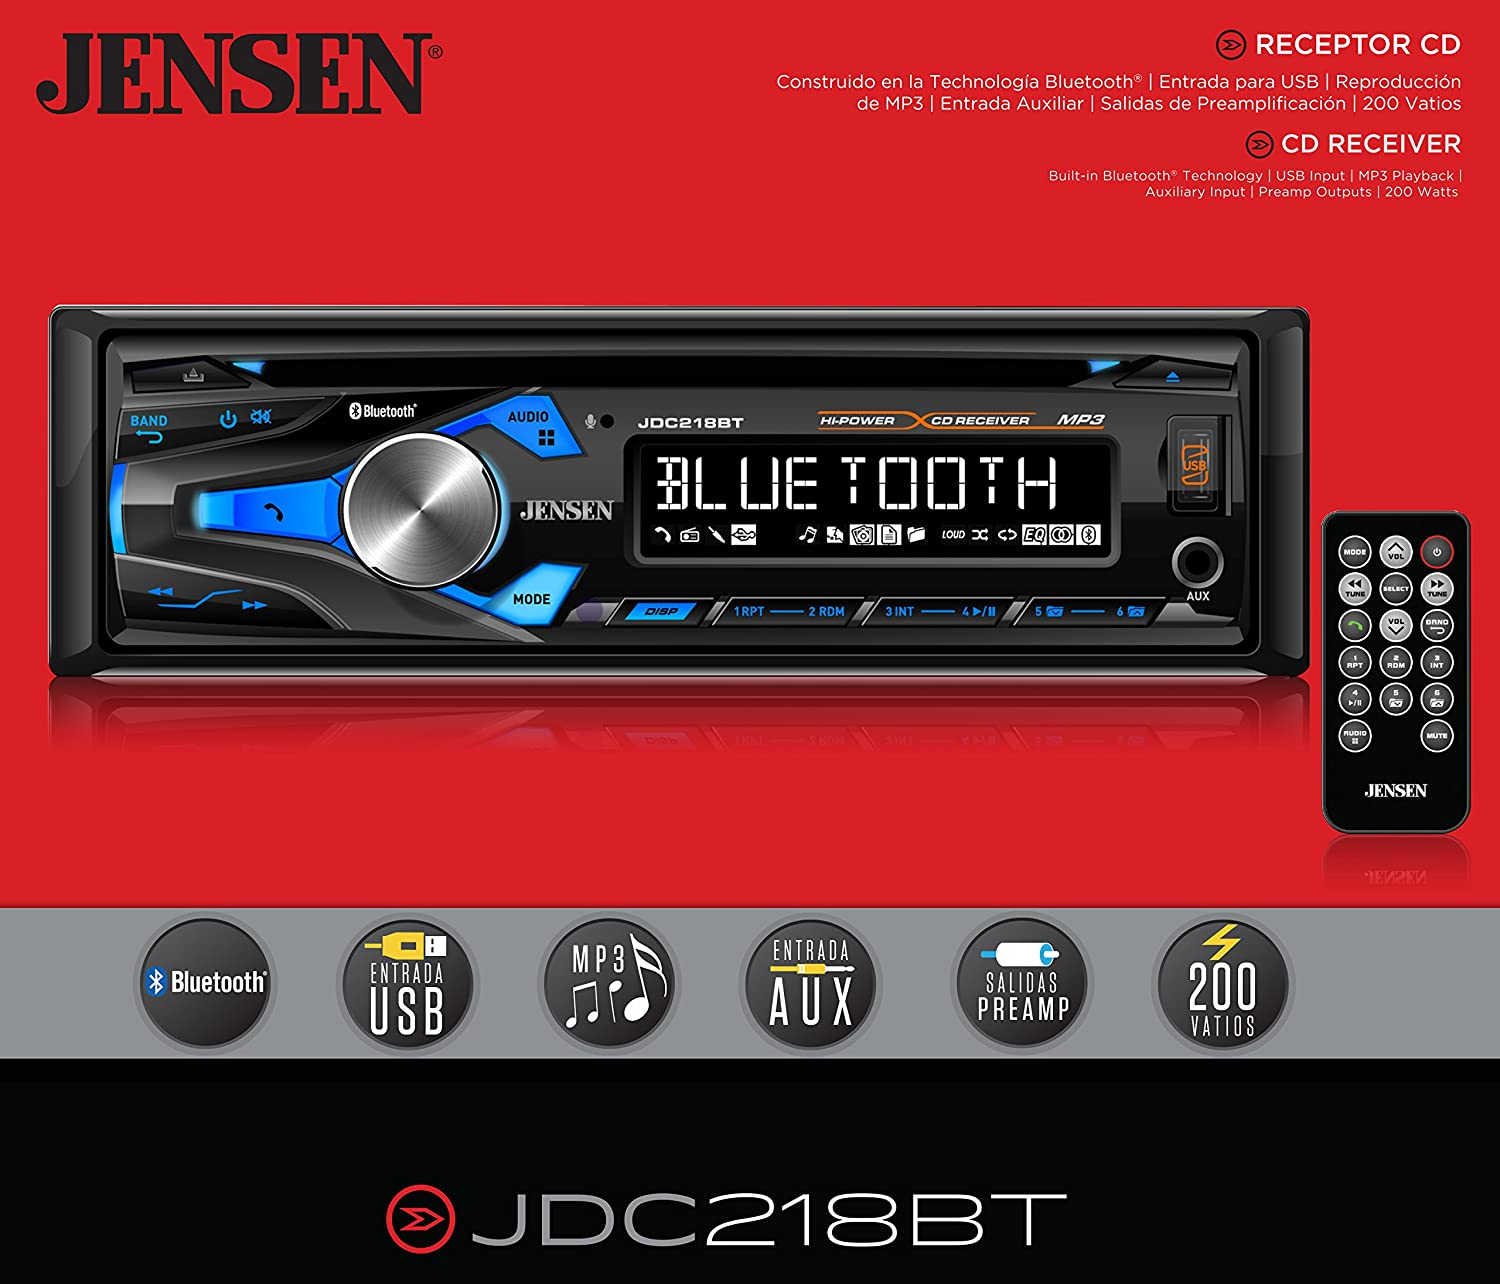 JENSEN JDC218BT Multimedia High Definition 10 Character LCD Single DIN Car Stereo Receiver with Built-in CD Player, Bluetooth, USB & MP3 Player Dual Jensen